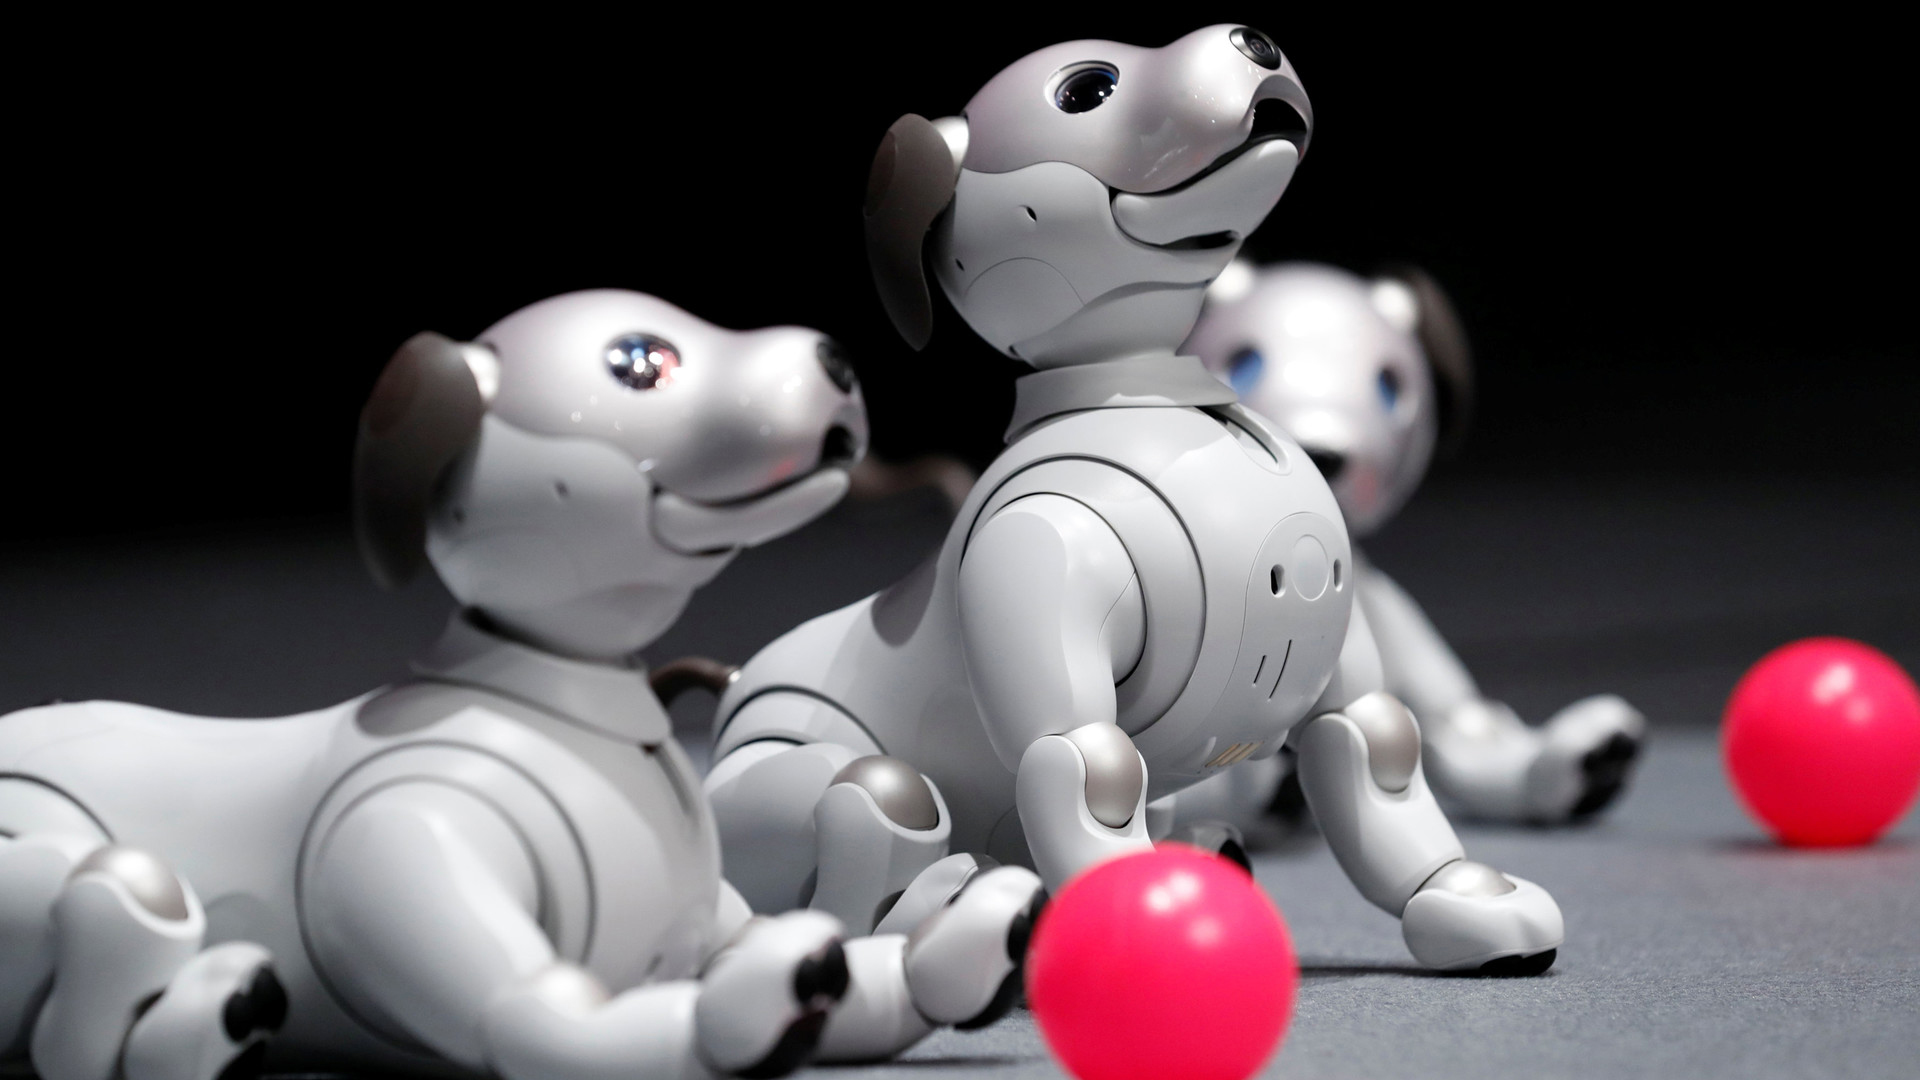 CES 2018: Robots Turn Adorable for your Smart Home